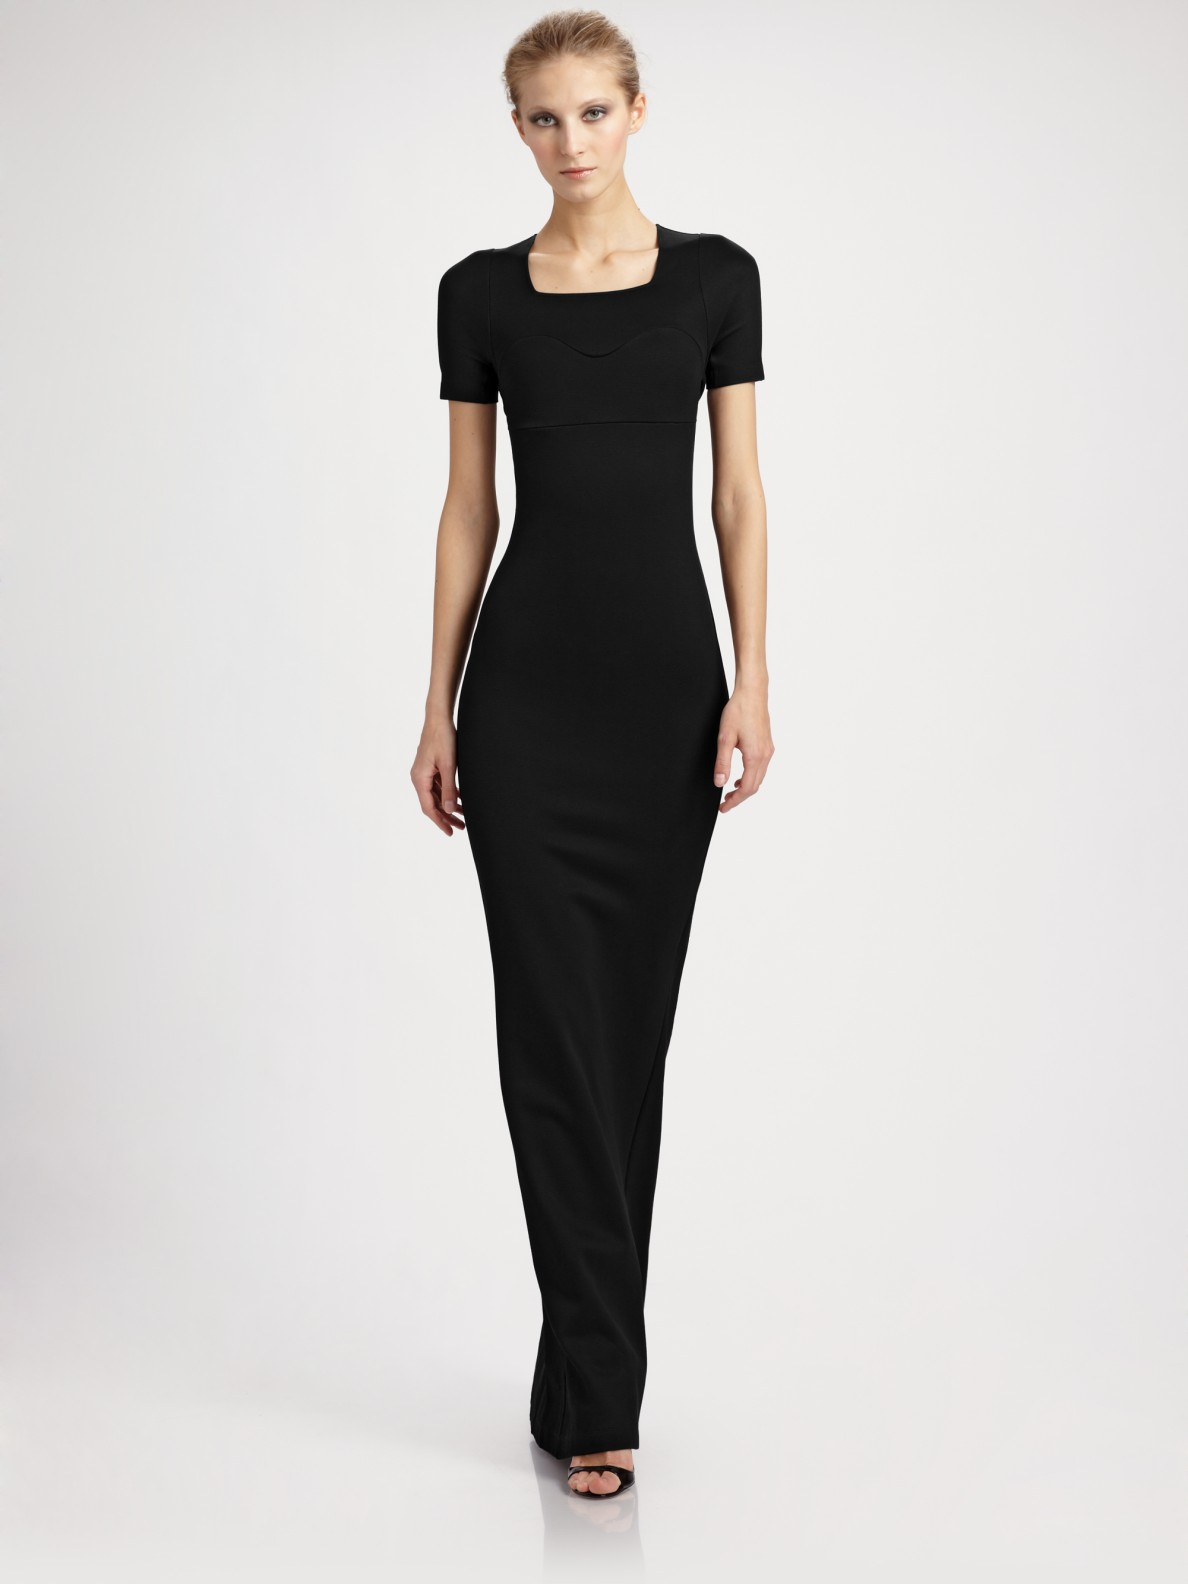 Jil sander Fitted Long Jersey Dress in Black | Lyst